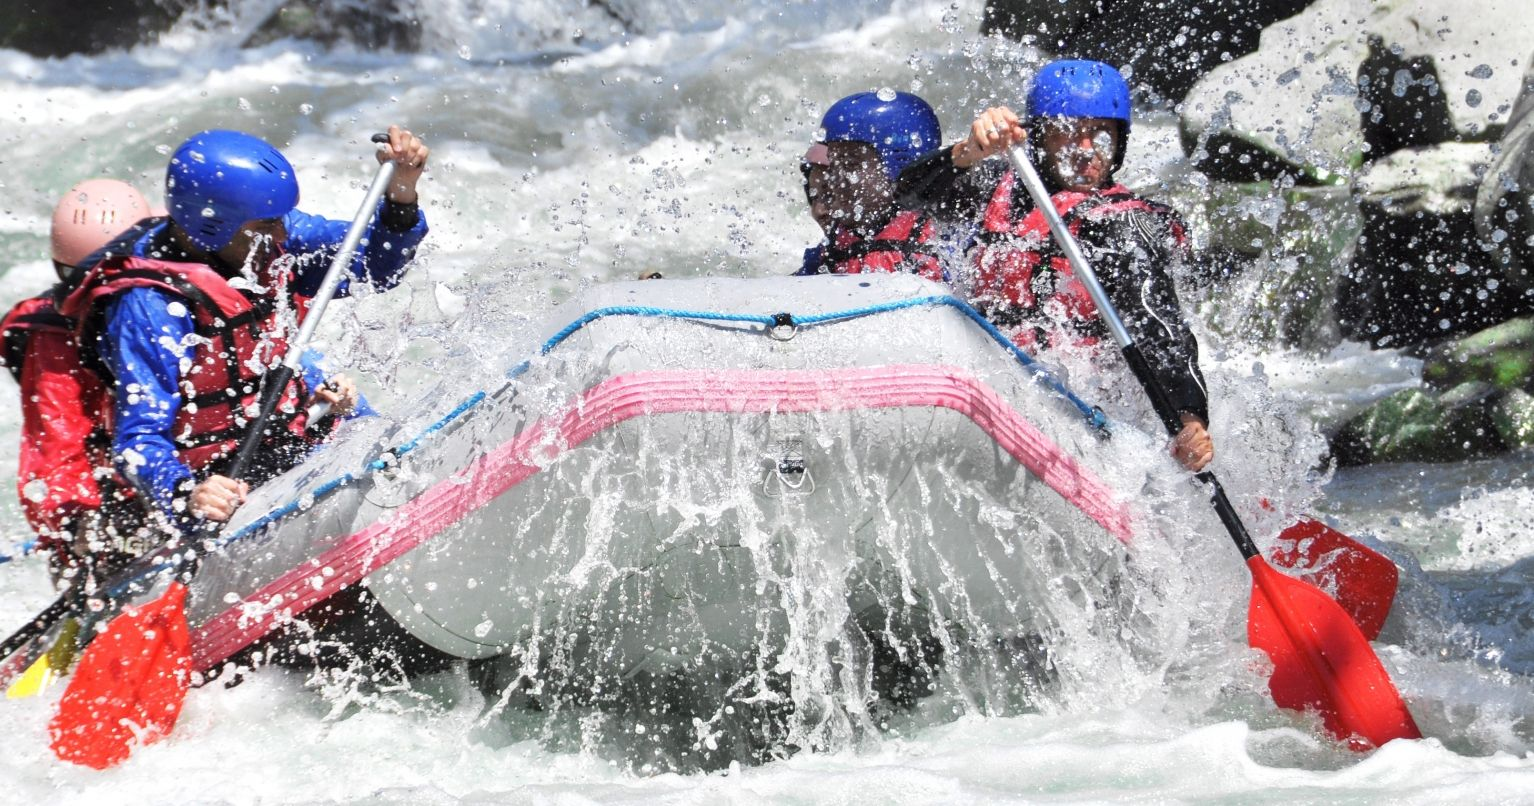 Thrilling White Water Rafting River Tummel Scotland Tinggly Experience Gifts